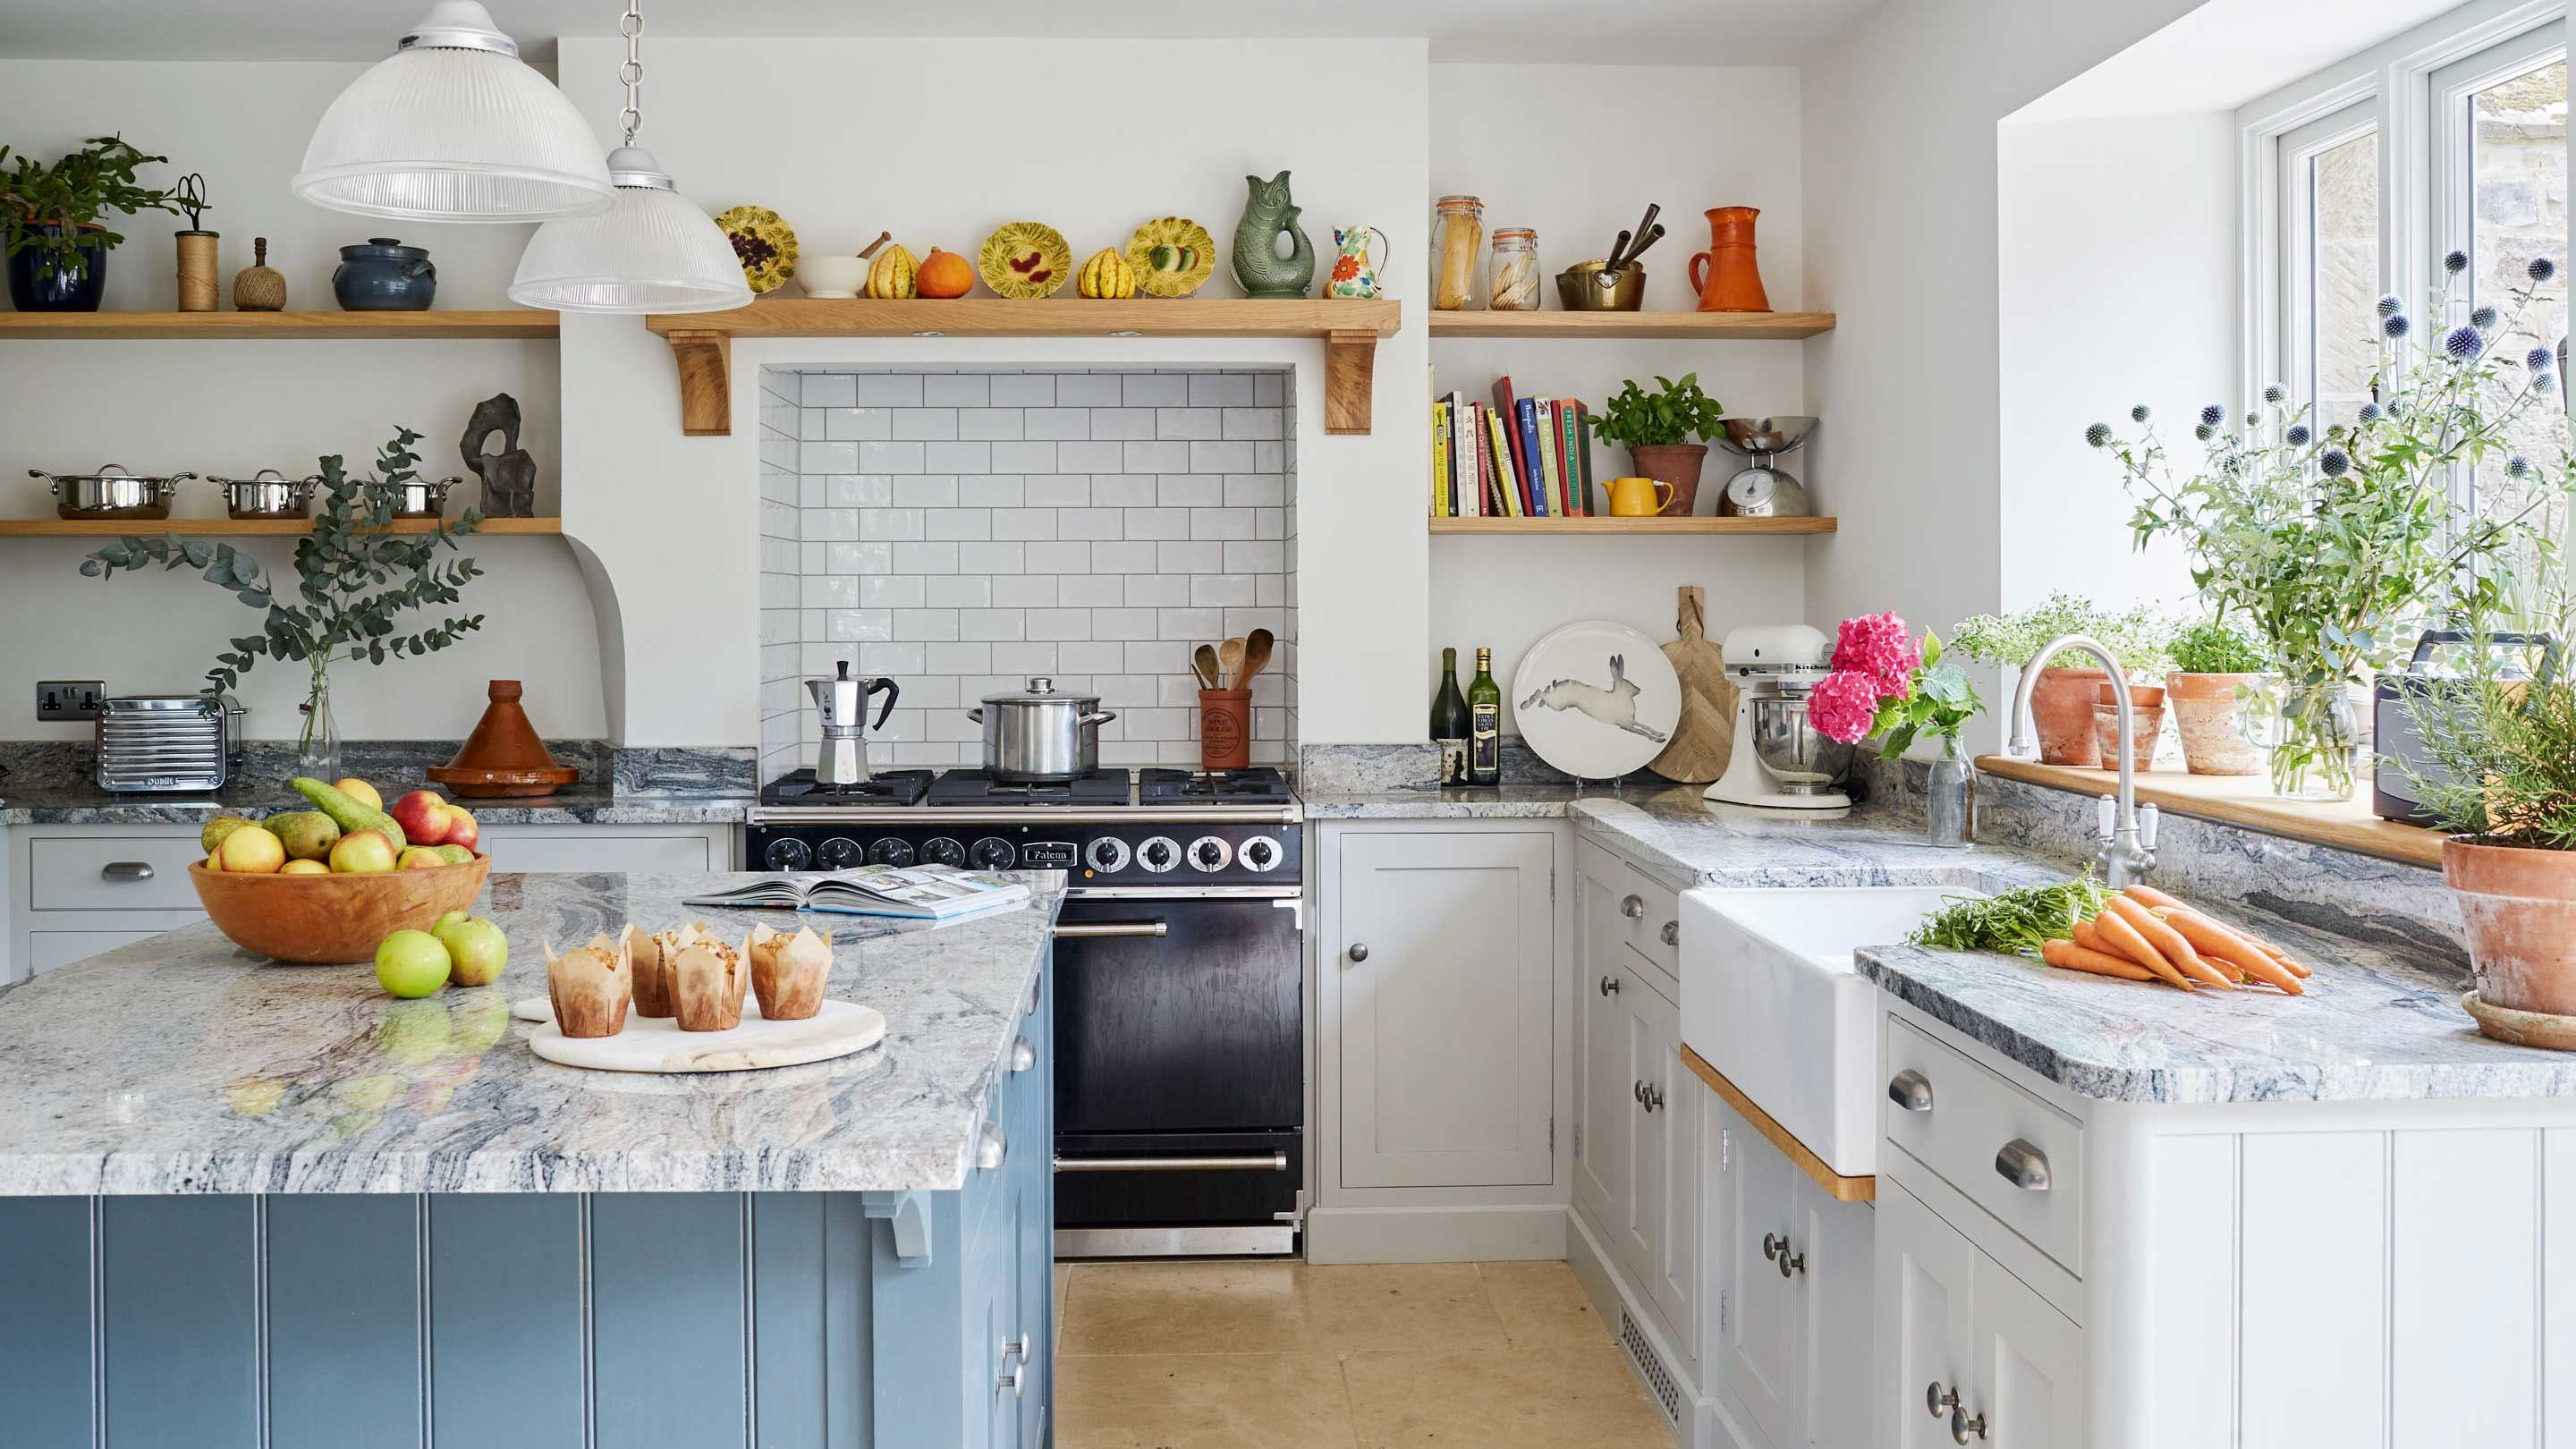 House Renovation Costs How Much Does It Cost To Renovate A House Real Homes Home Renovation Costs Home Renovation Traditional Kitchen